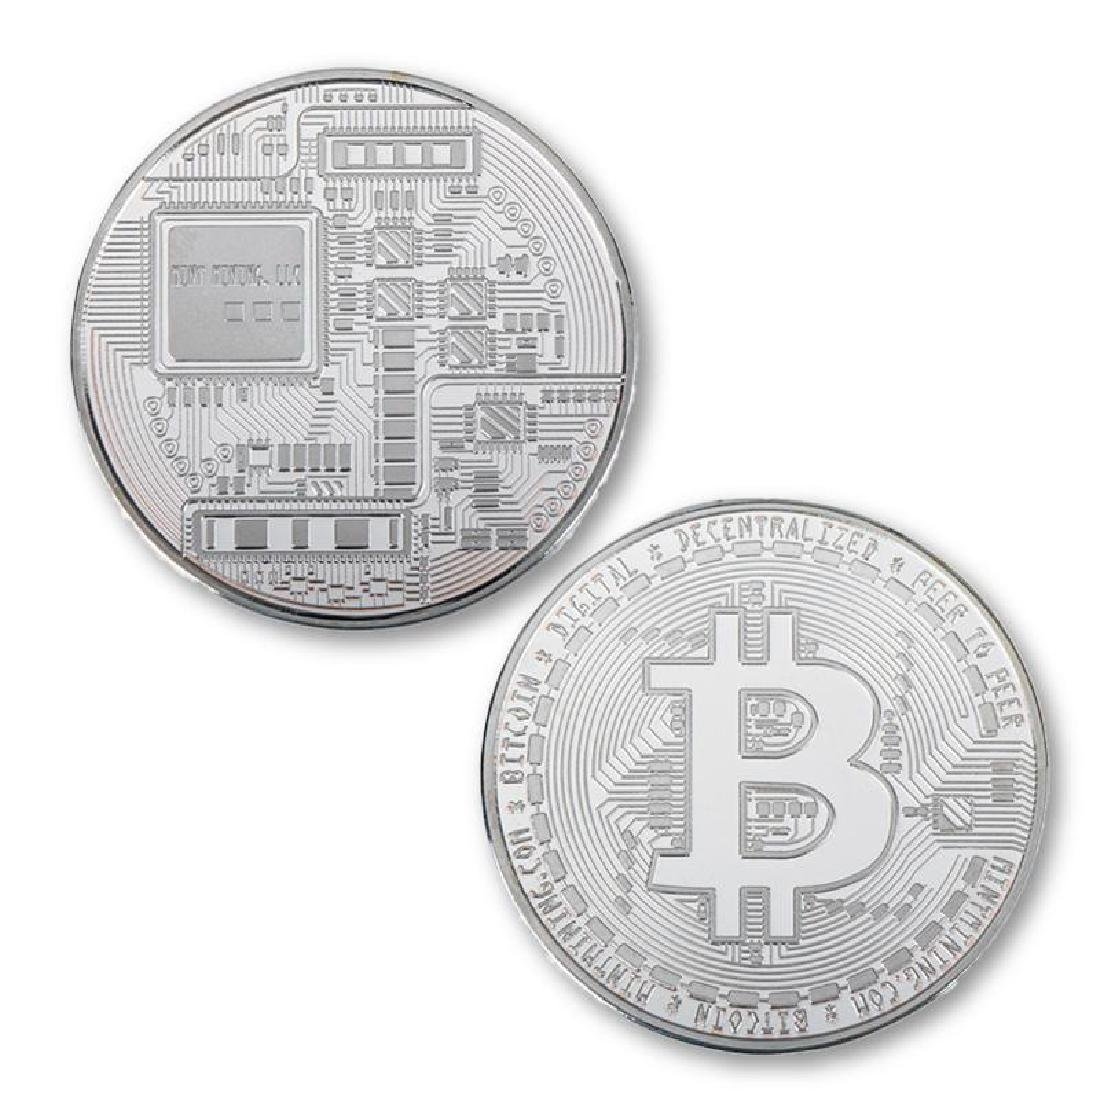 4 Bitcoin Silver and Gold Clad Collectible Coins - 4